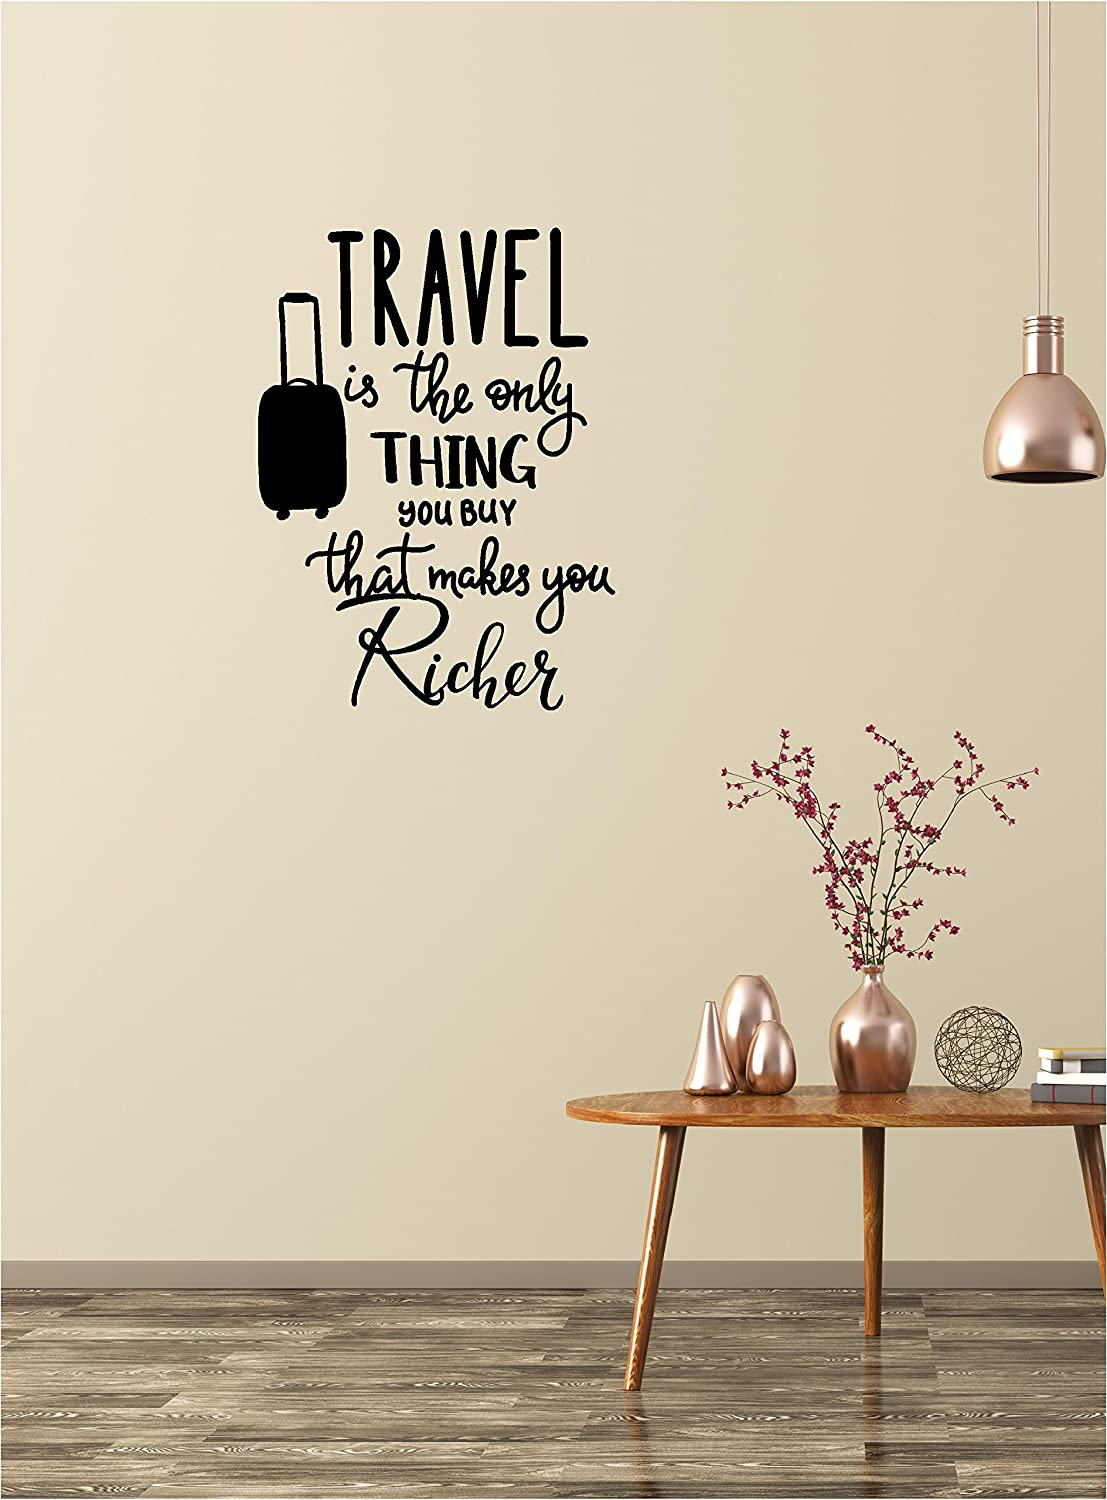 Home wall decal decor travel is the only thing you buy that makes you richer vinyl wall decals quotes sayings words art decor lettering wall art